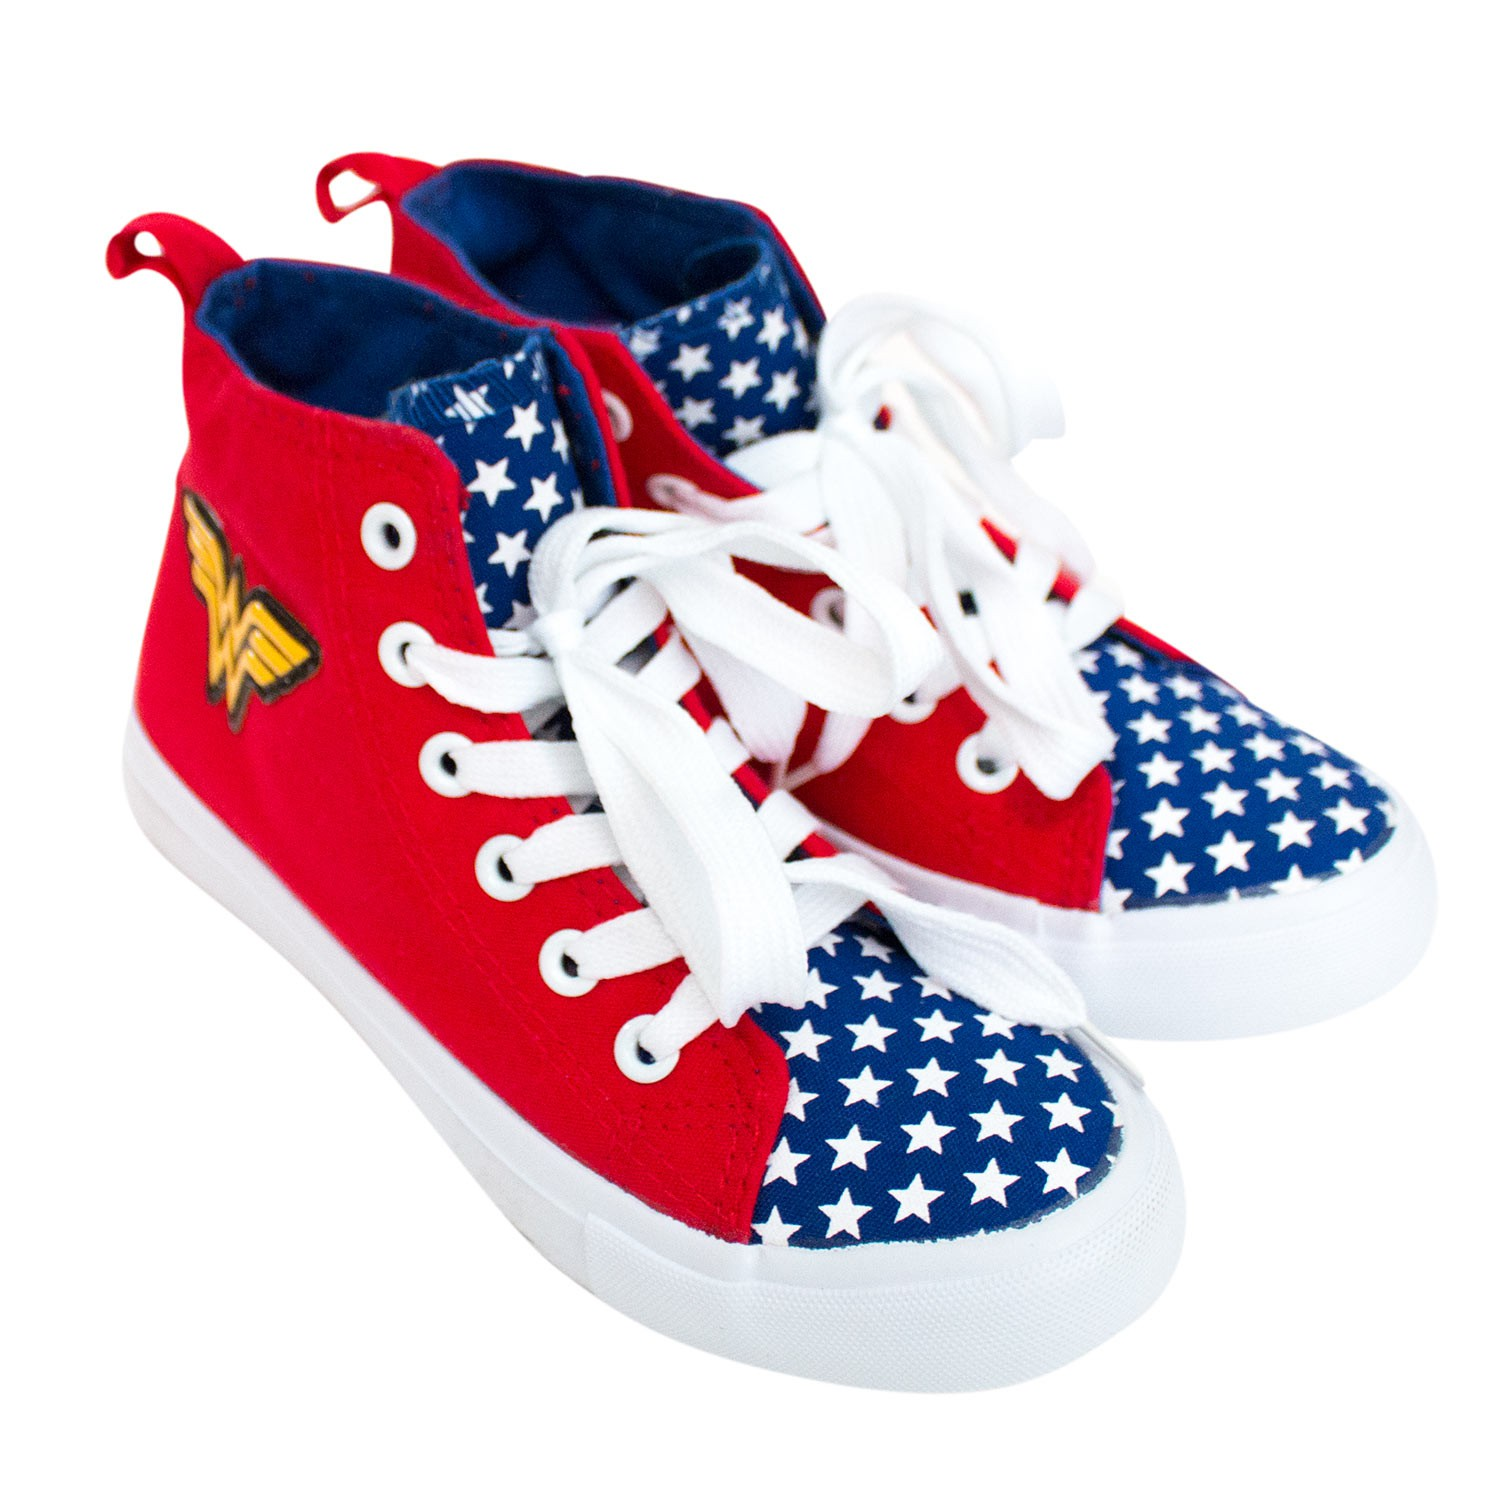 Wonder Woman Red Youth Sneakers